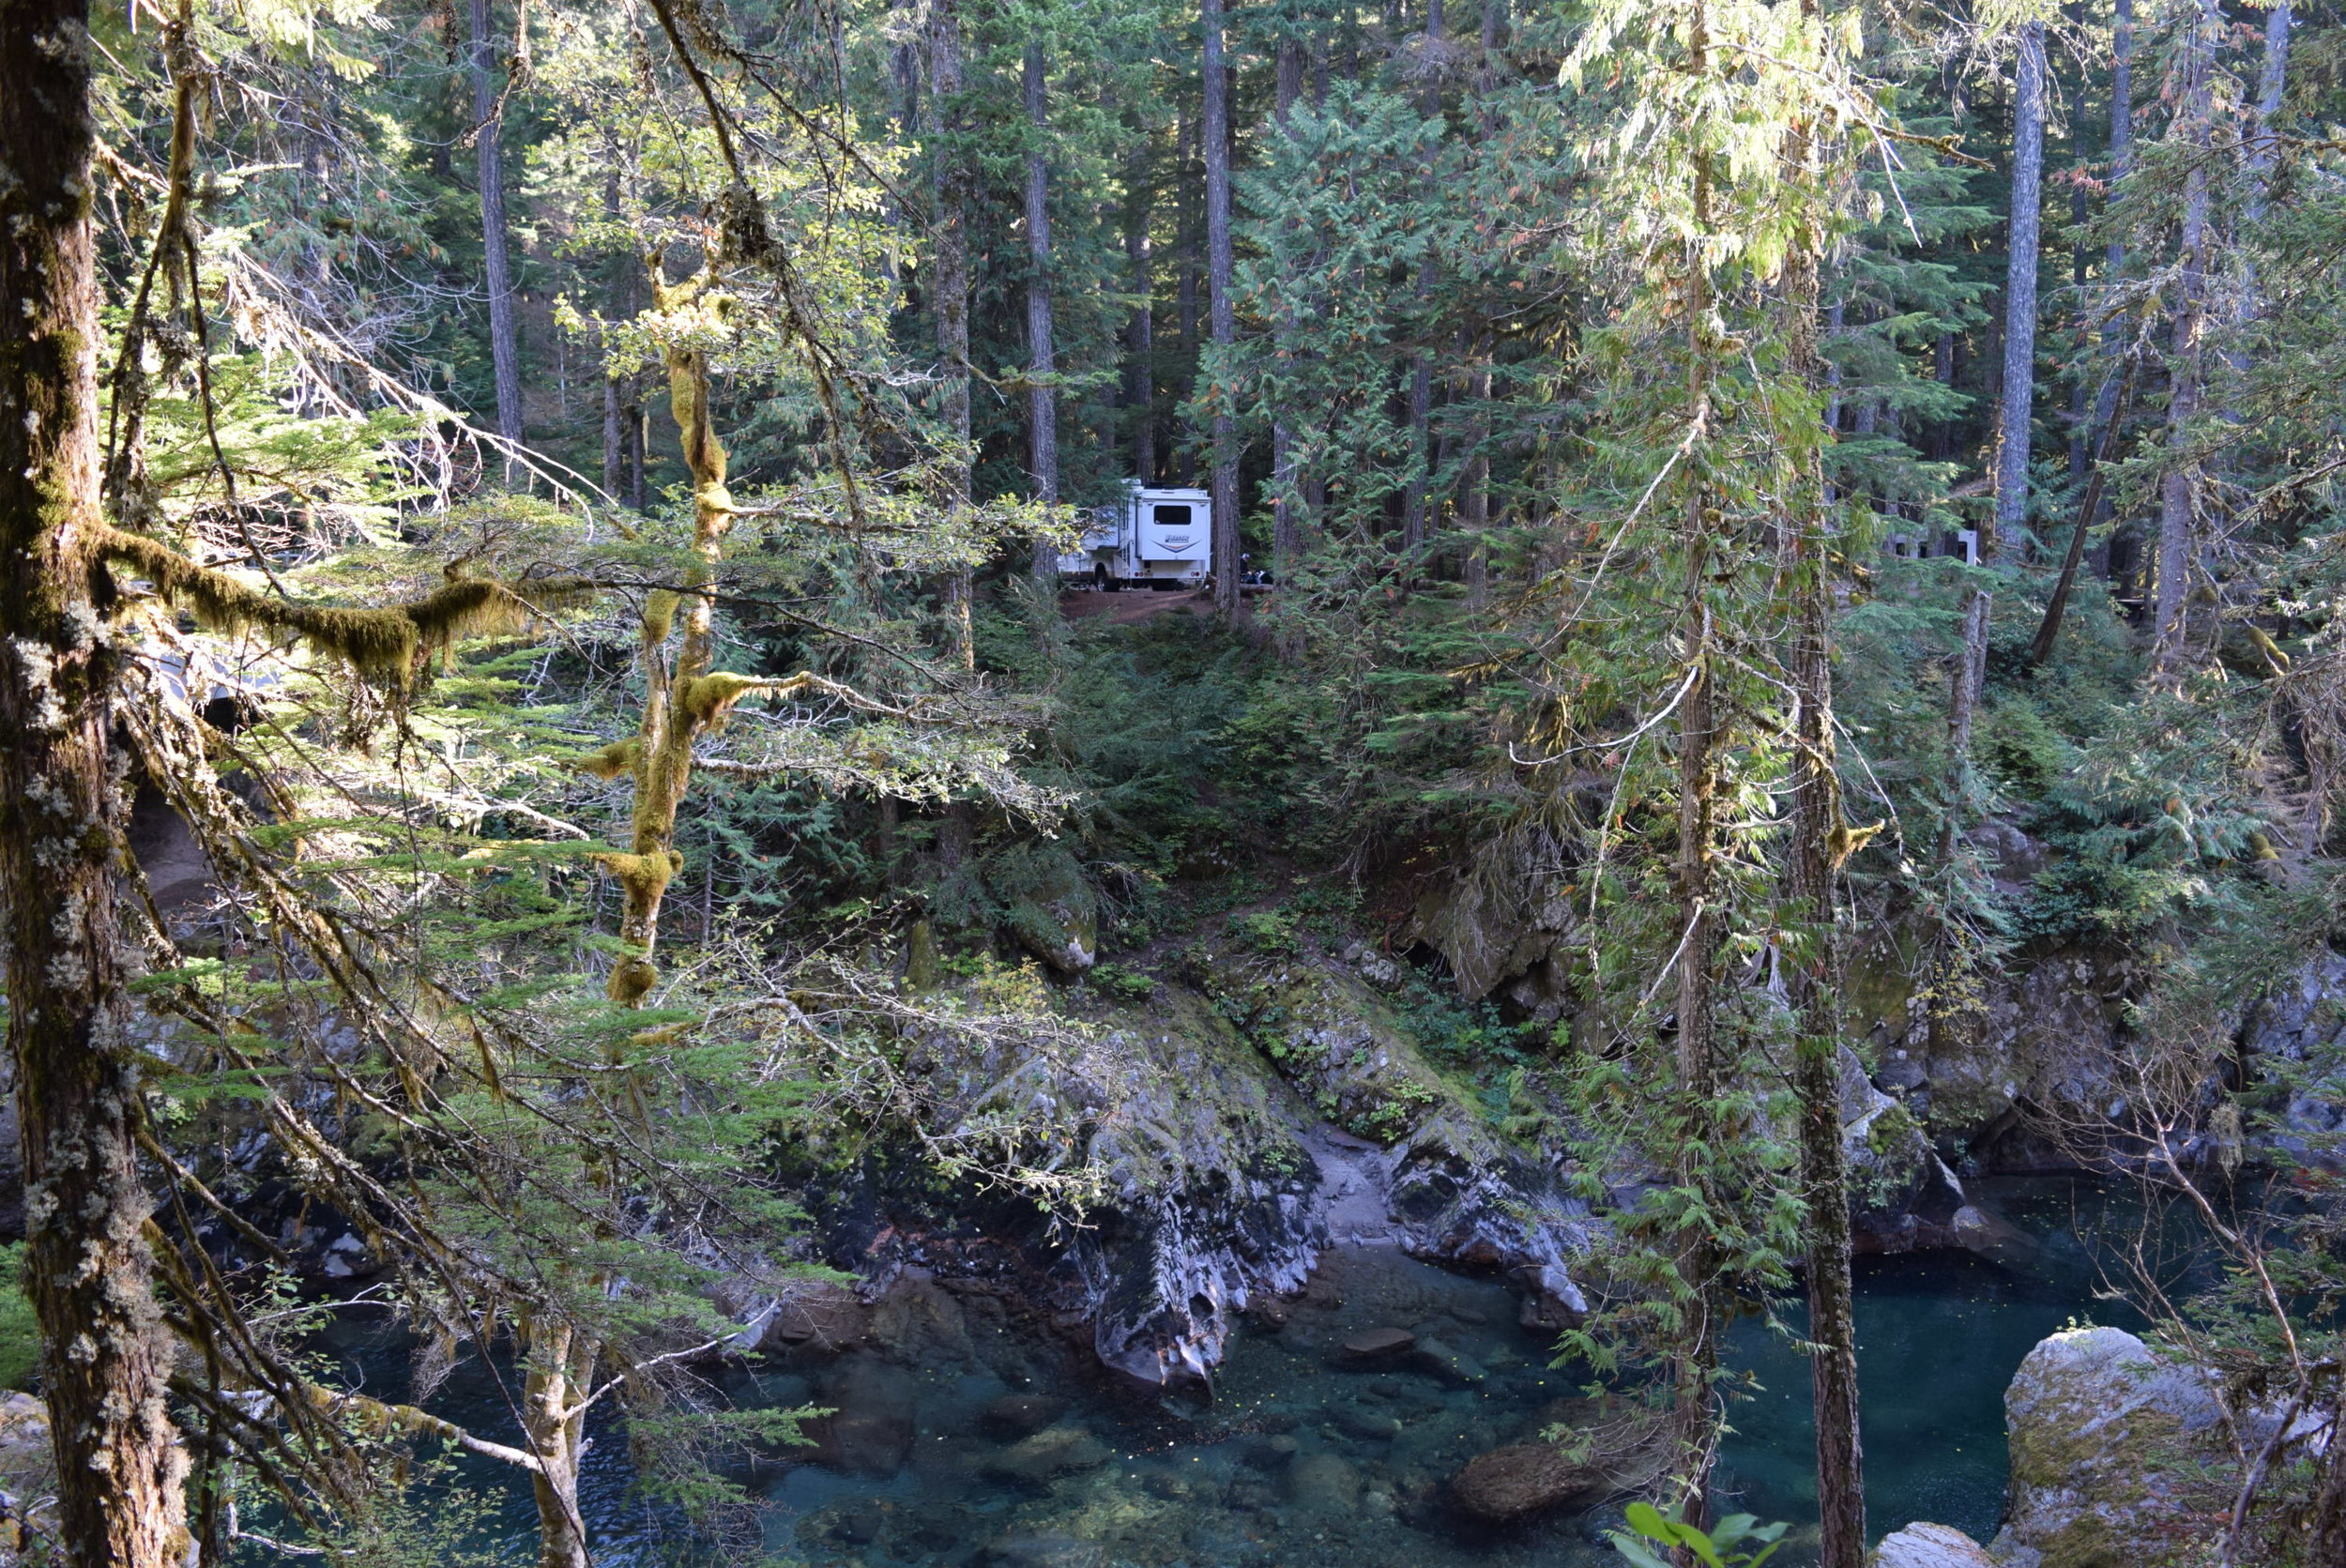 The camper nestled in the woods, above the Ohanapecosh River. Check out the clear water!